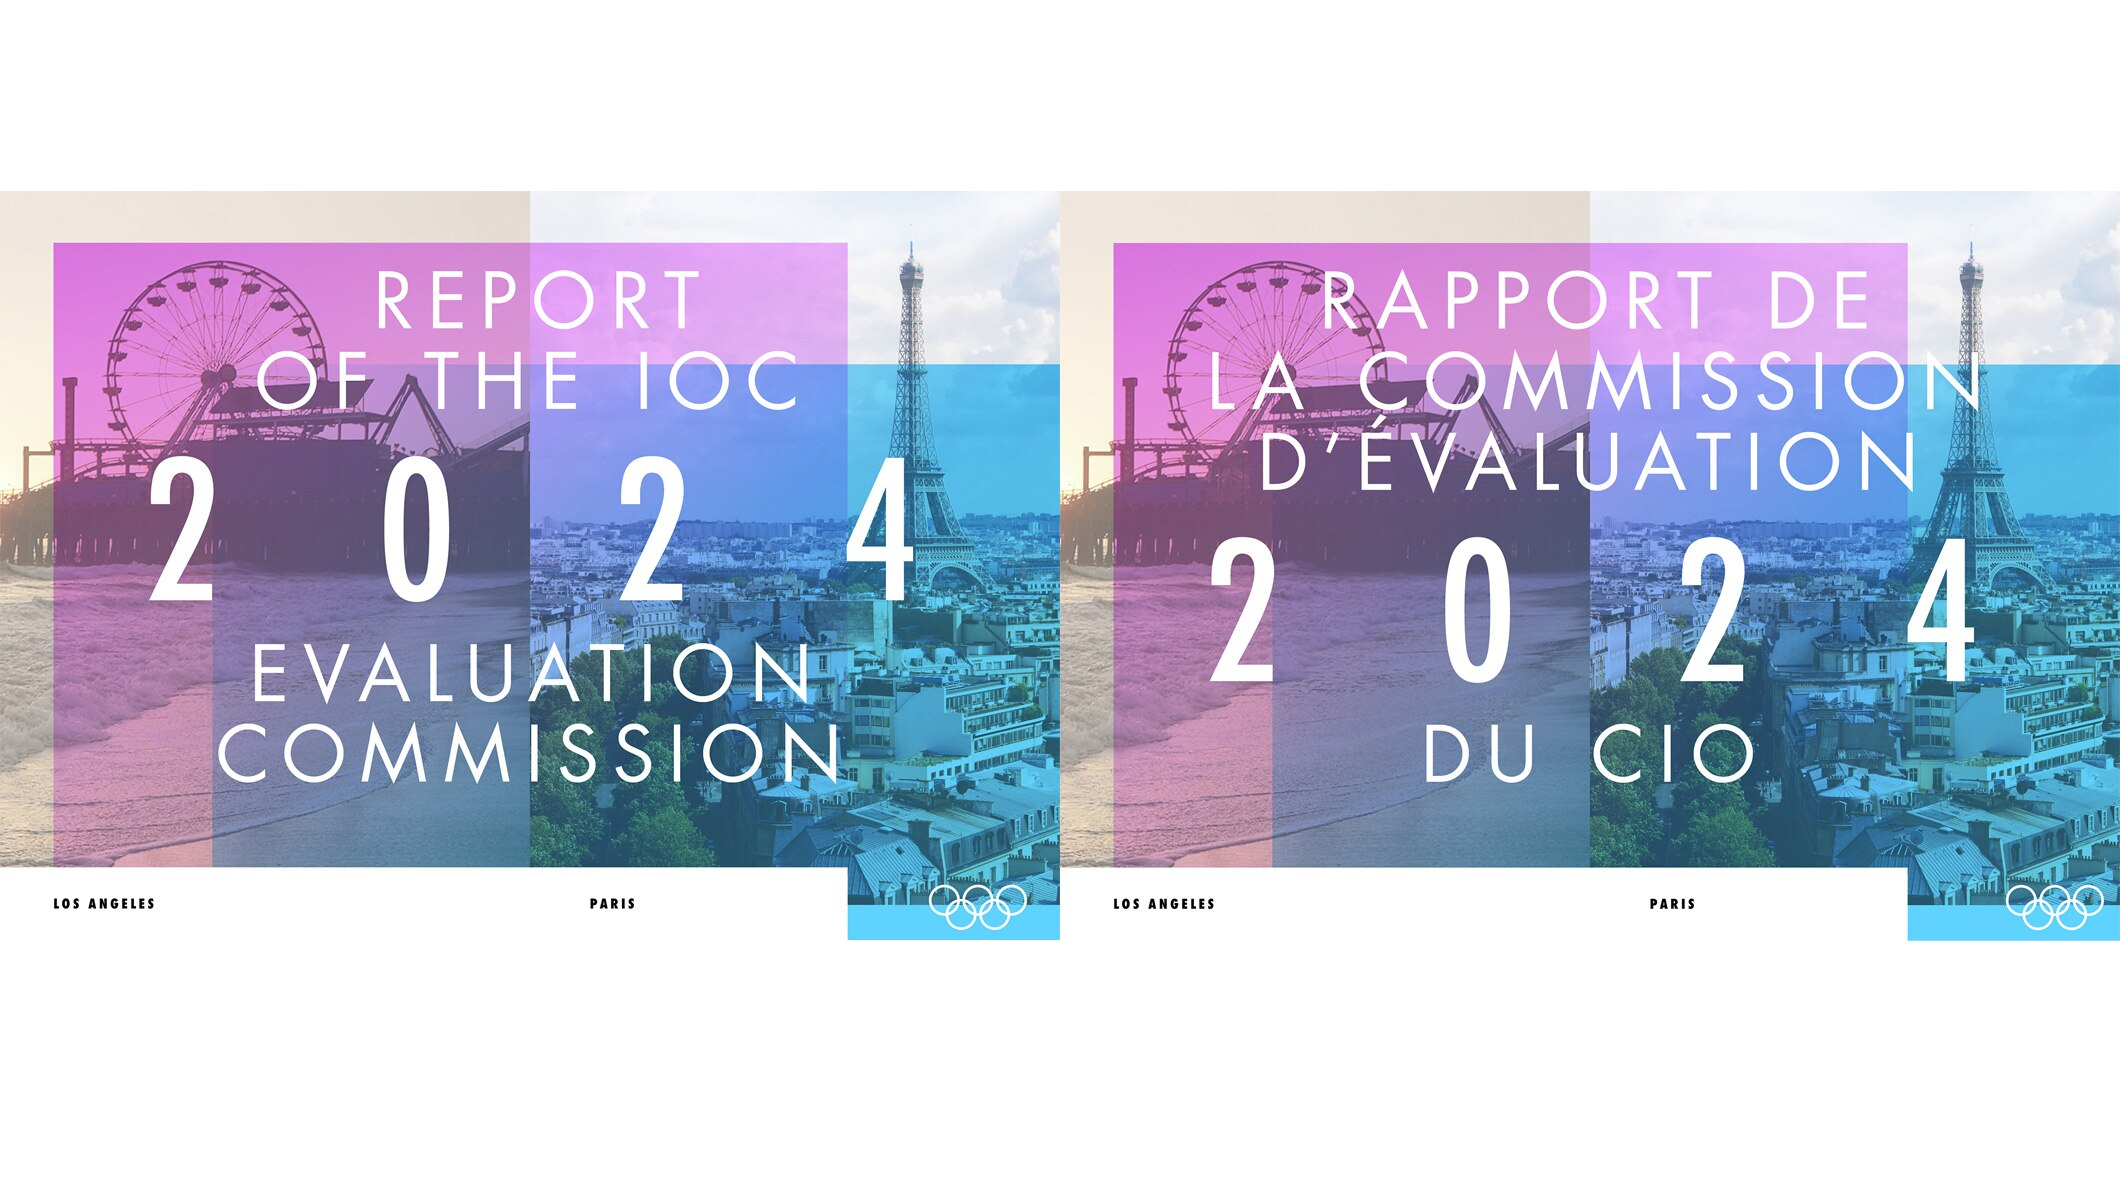 Report of the IOC 2024 Evaluation Commission